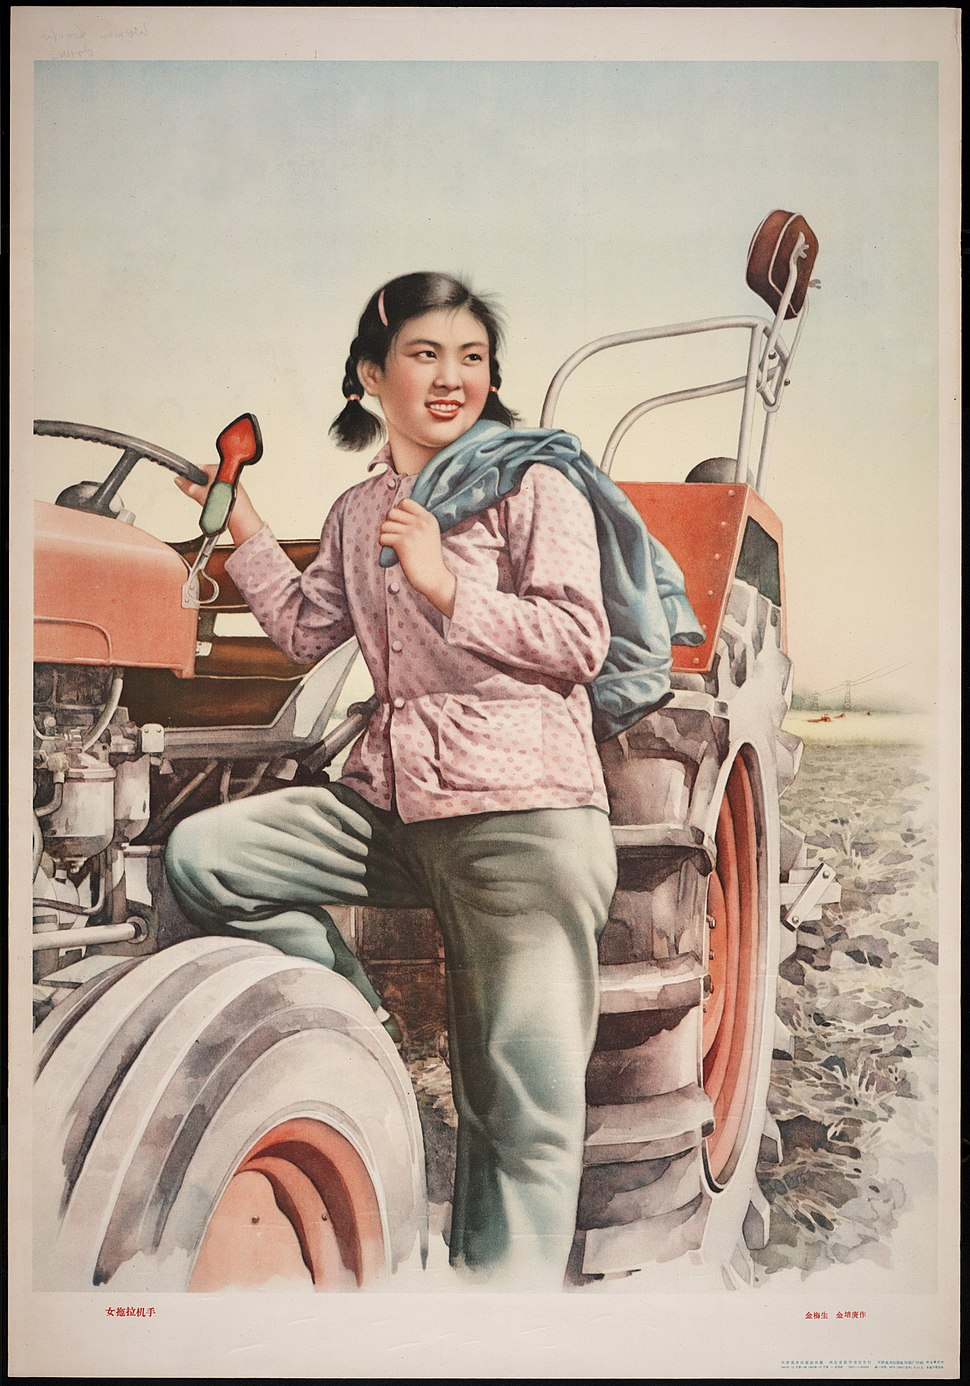 Chinese woman tractor driver